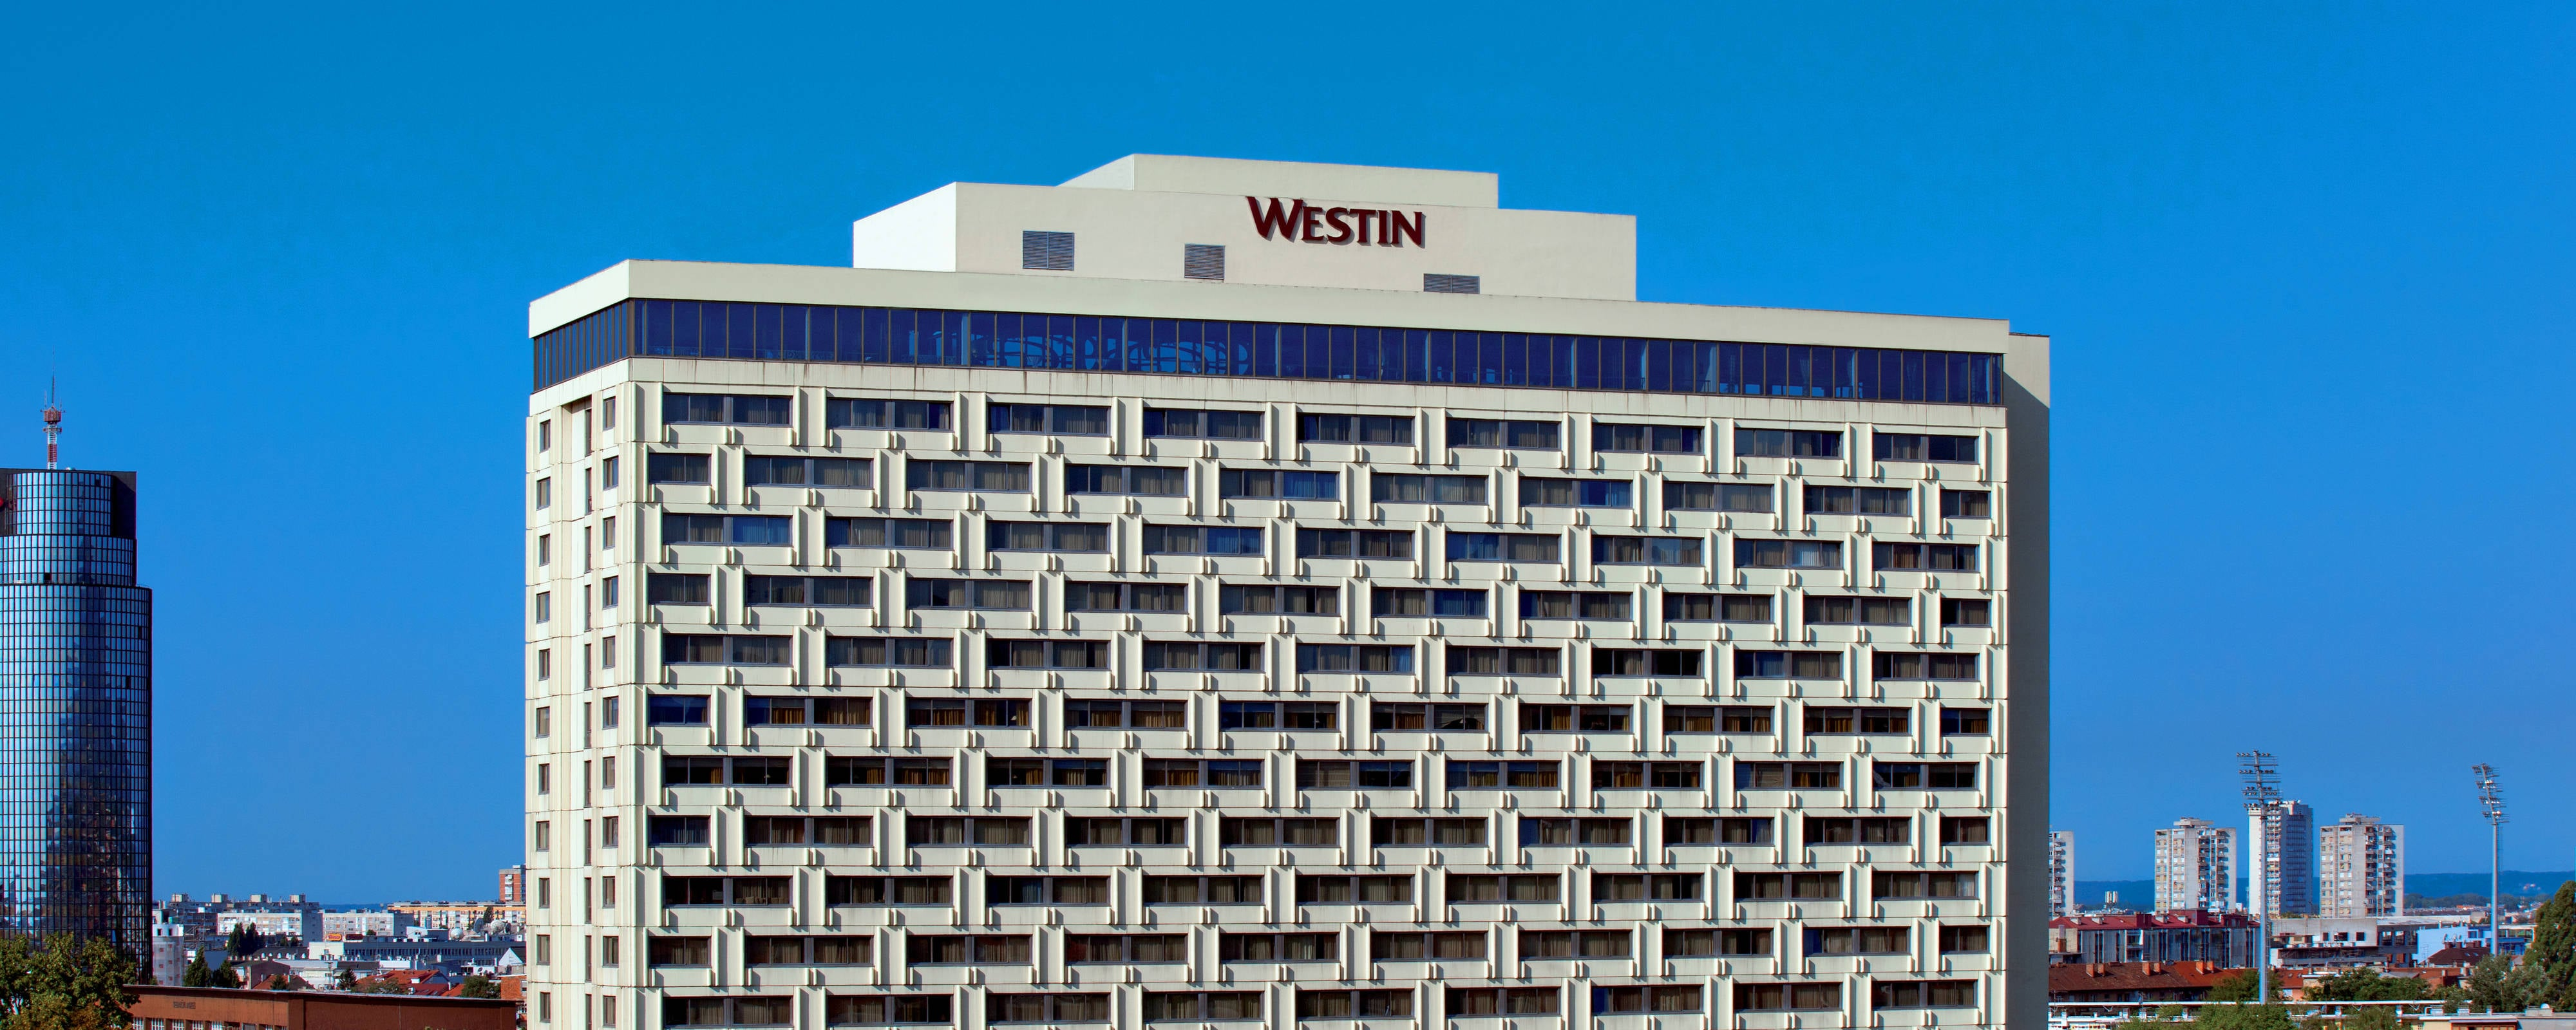 Hotel Amenities Contact Information The Westin Zagreb